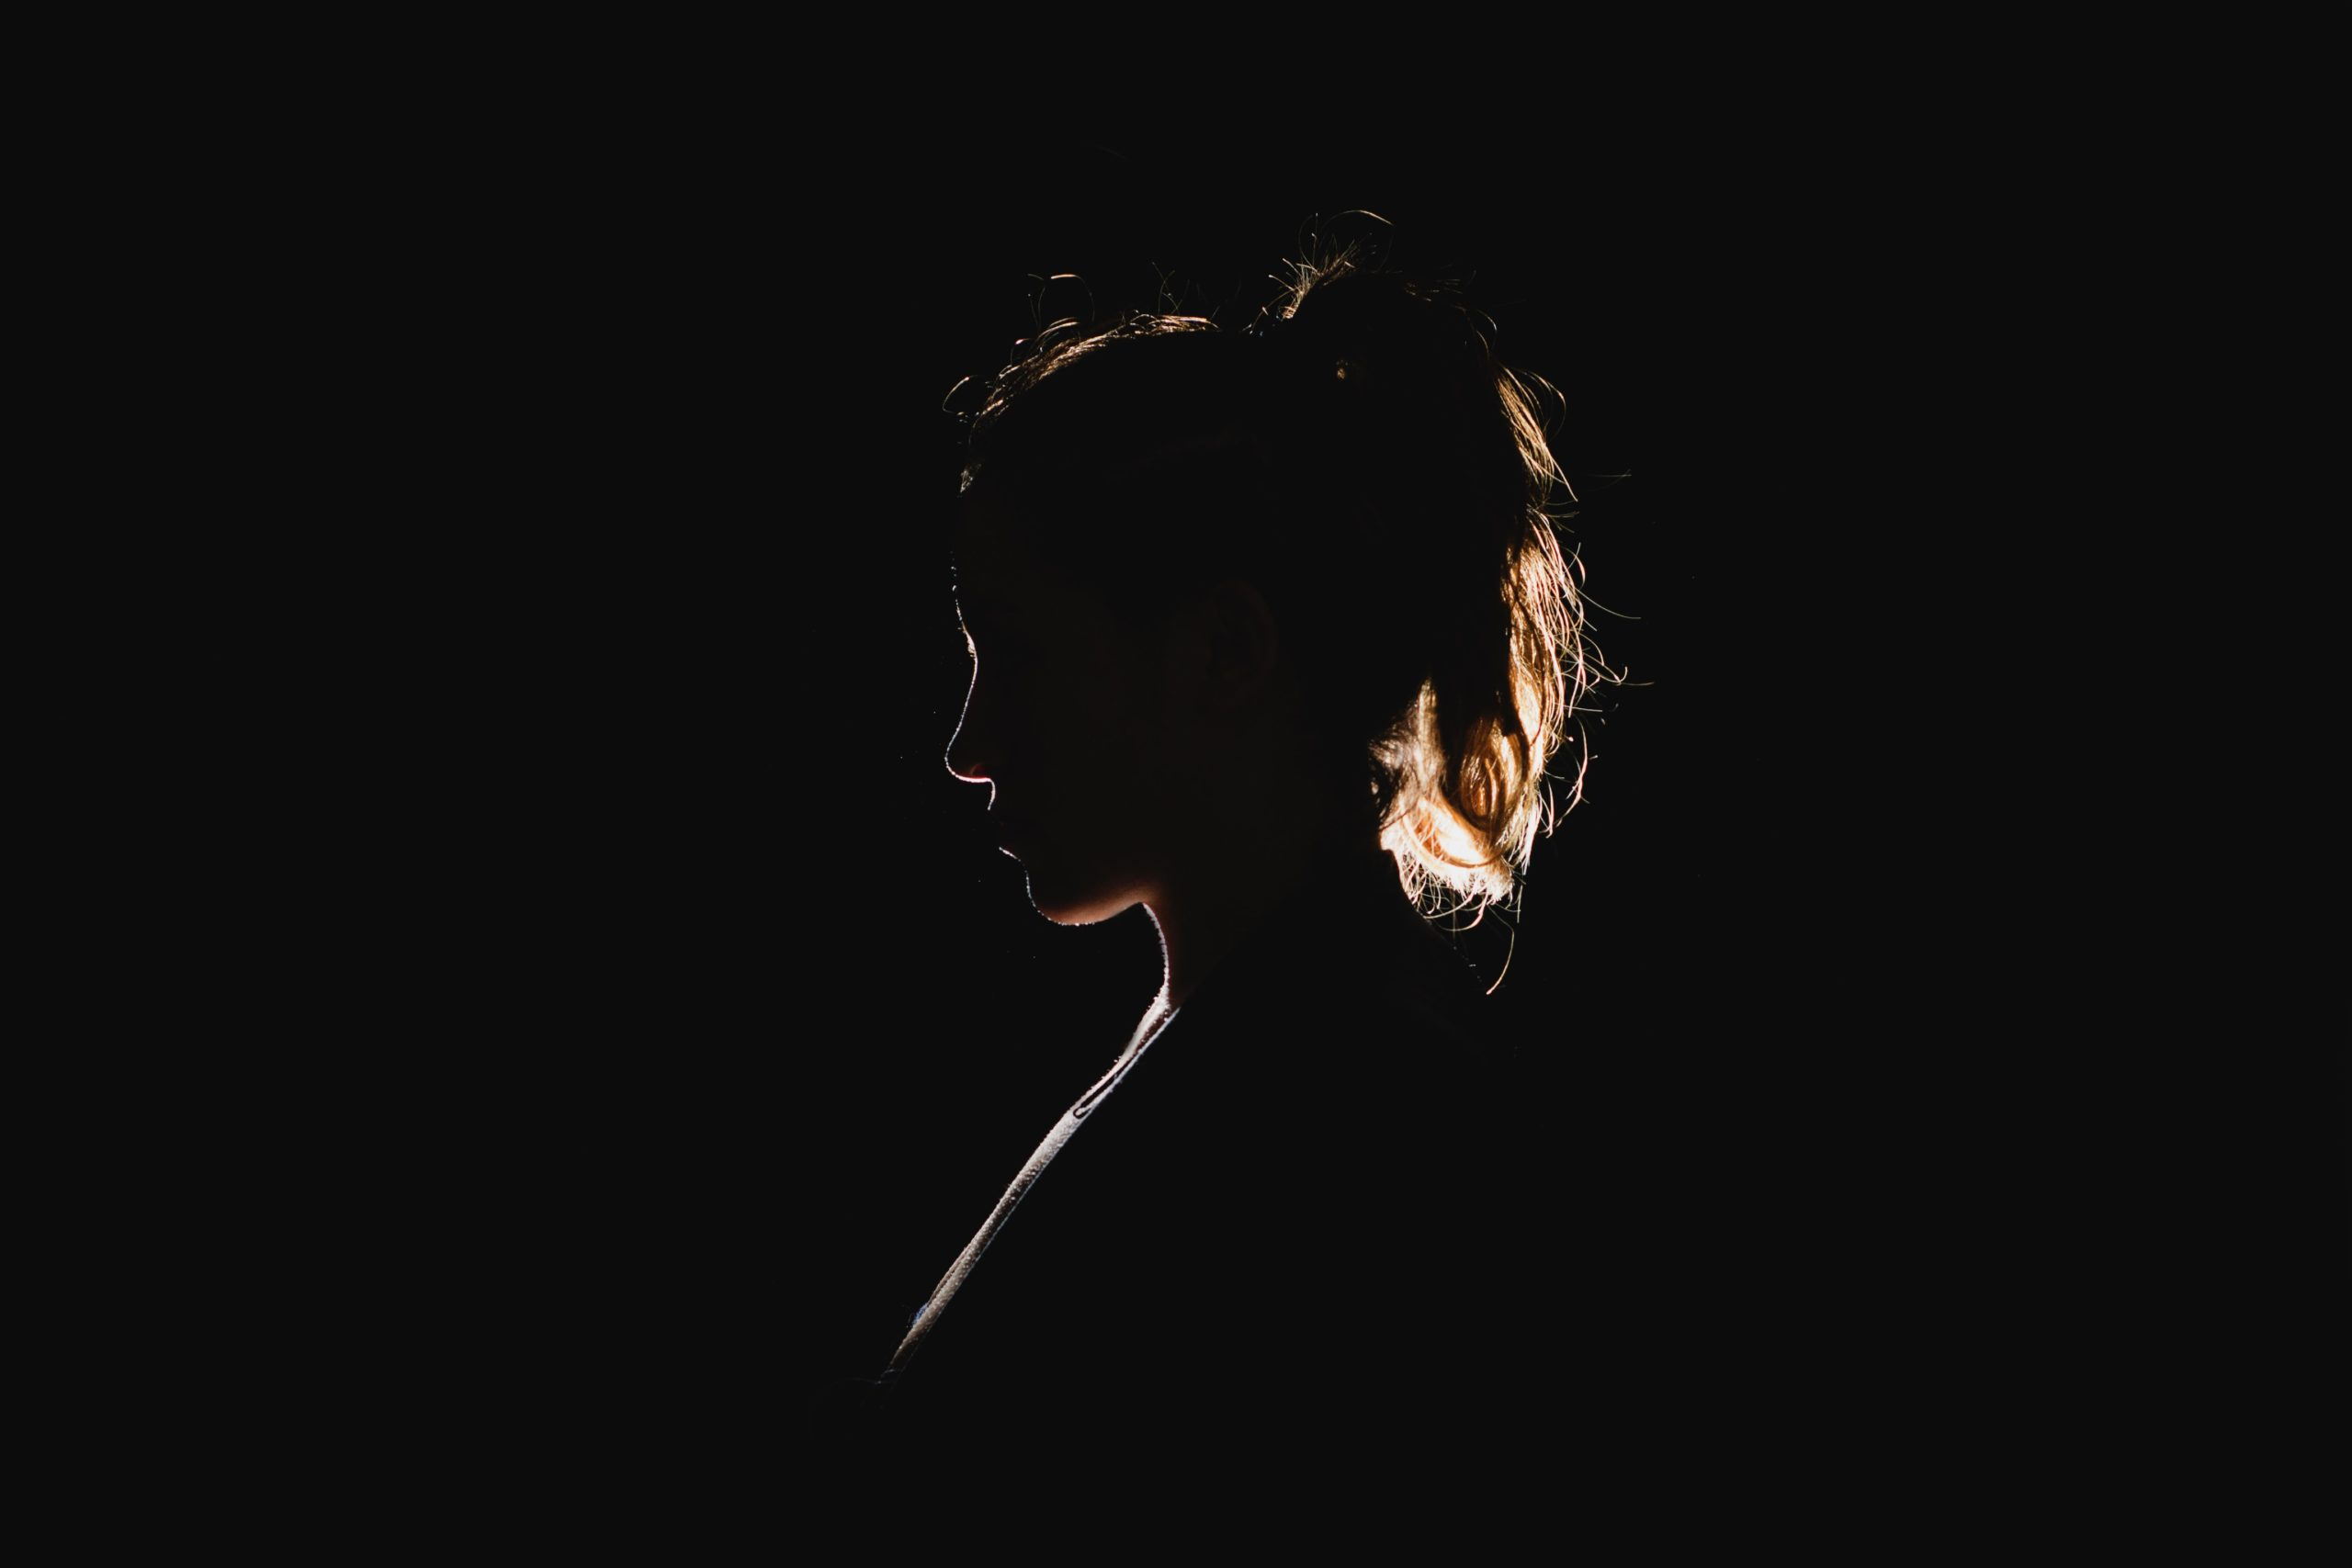 a black silhouette of a woman